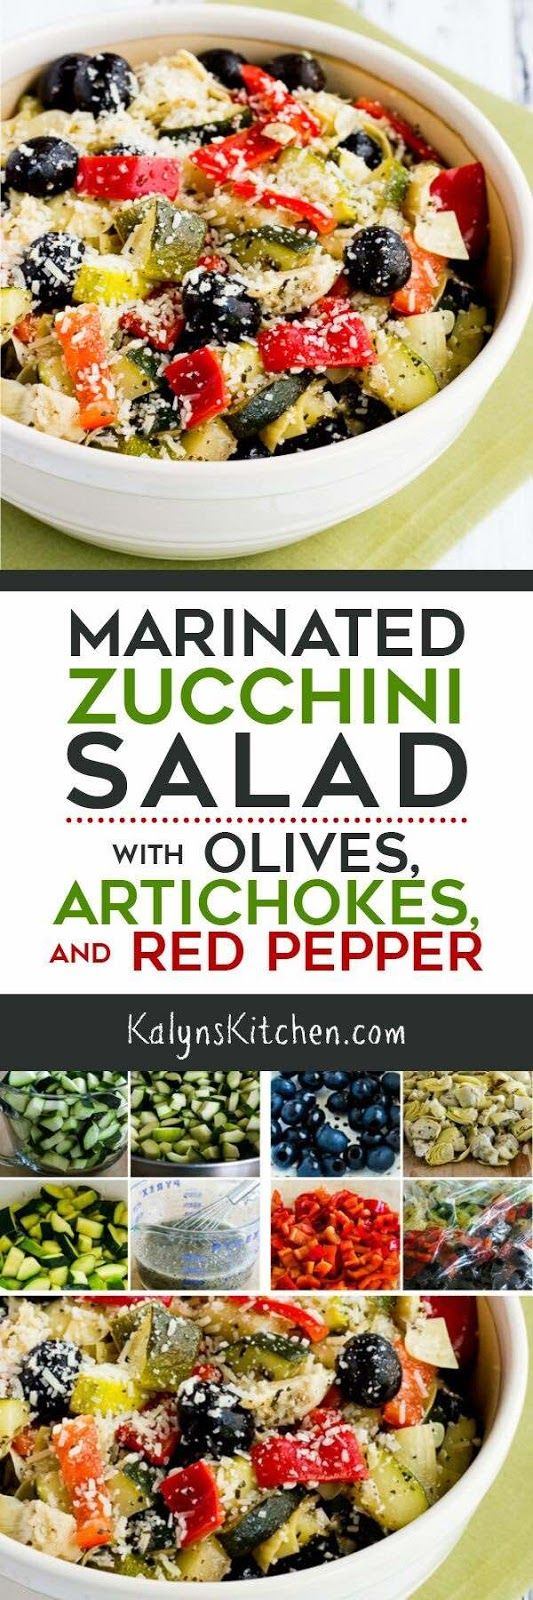 This Marinated Zucchini Salad with Olives, Artichokes, and Red Pepper, (plus Red Onion if desired) is one that I've been making for years and this is one of the Top Ten Most Popular Low-Carb Zucchini Recipes on Kalyn's Kitchen! And this delicious summer salad with zucchini is low-carb, gluten-free, and South Beach Diet friendly. [found on KalynsKitchen.com]